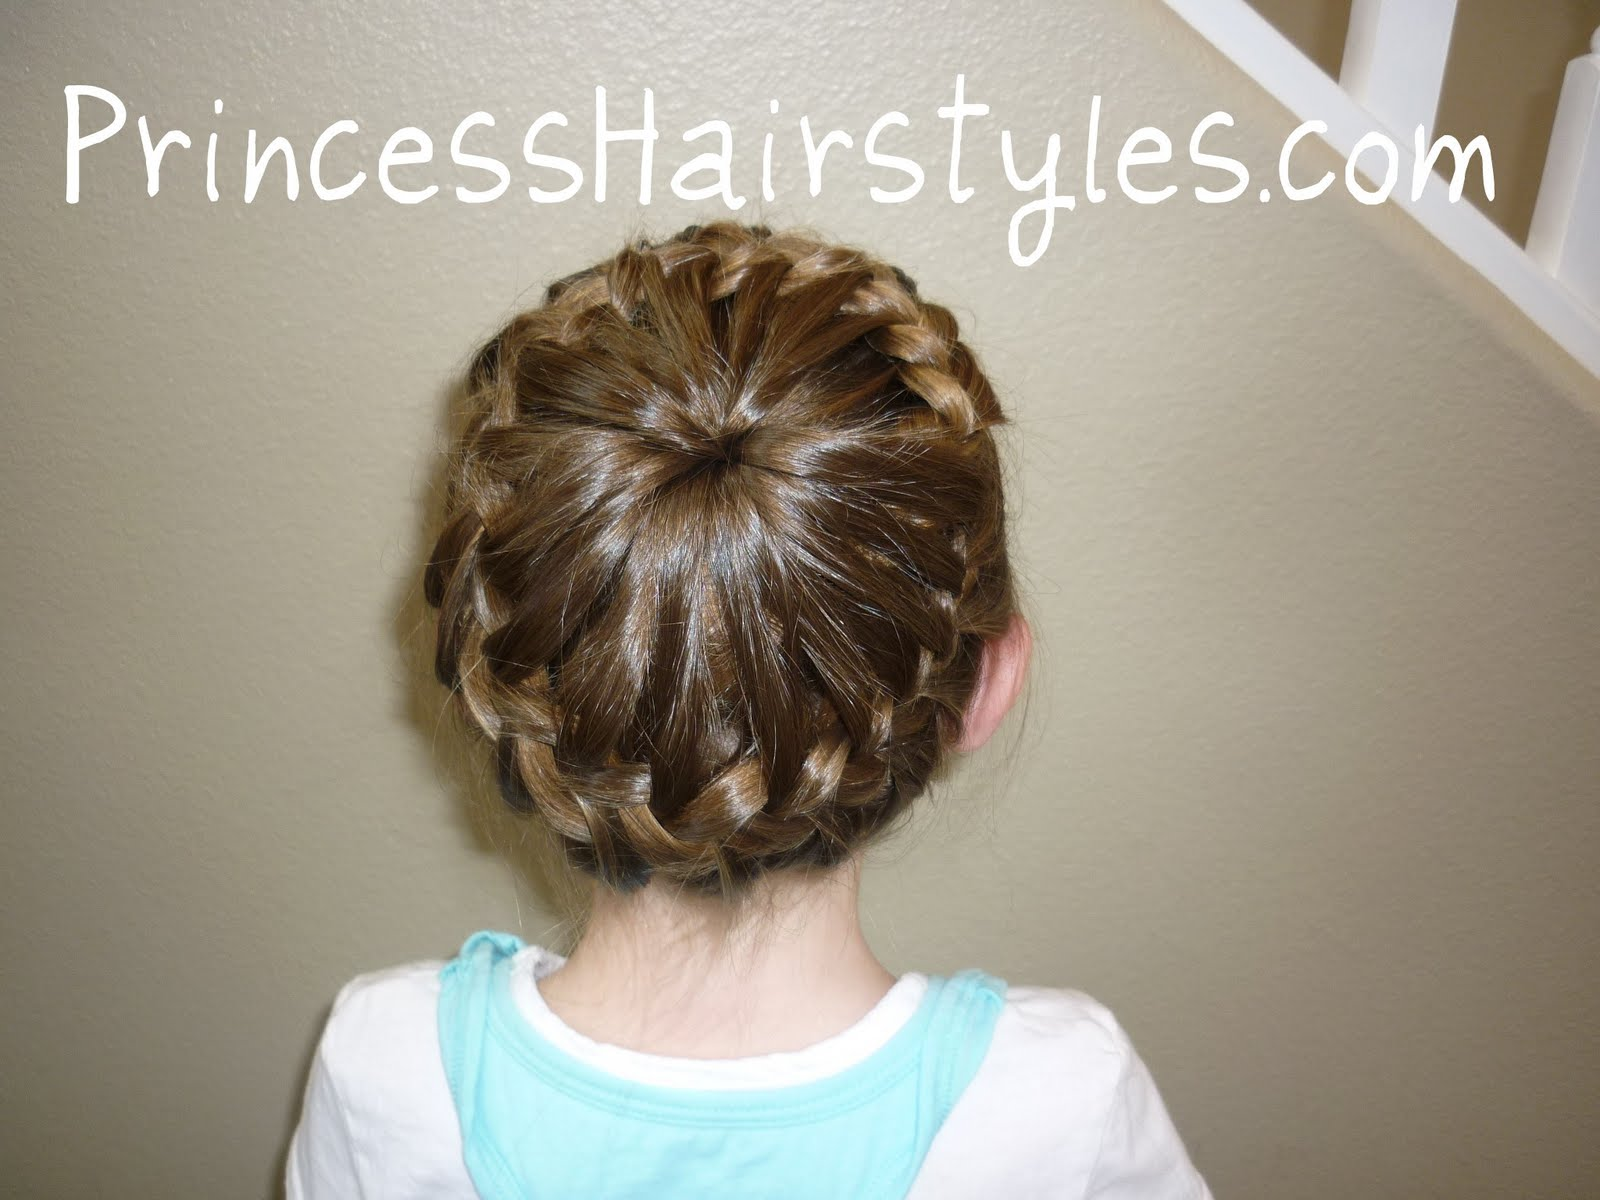 Never Ending French Braid Bun Hairstyles For Girls